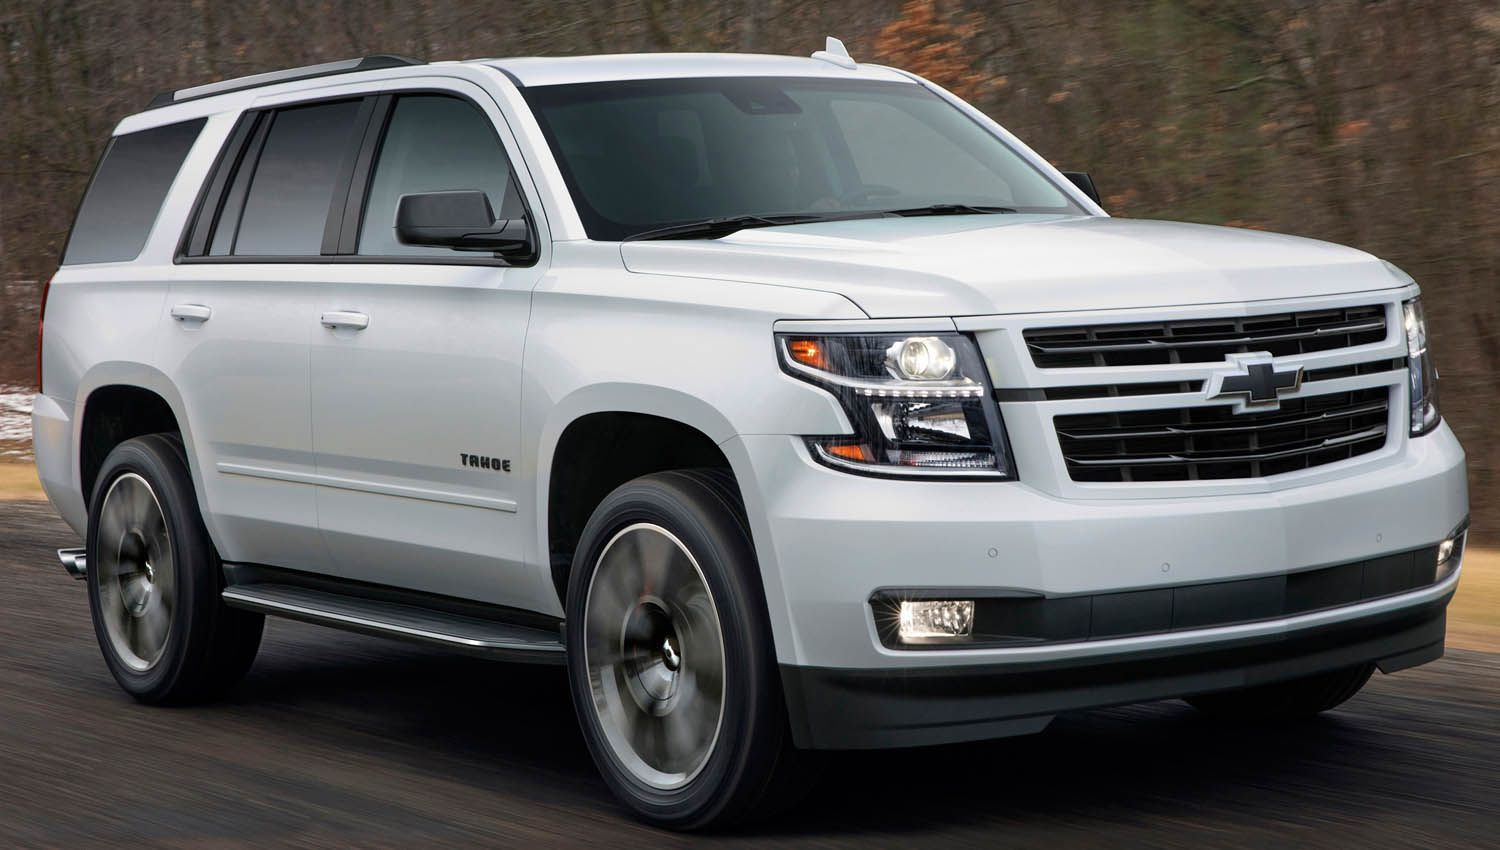 Http Wheelz Me Chevrolet Tahoe Rst شيفروليه تاهو ار اس تي 2018